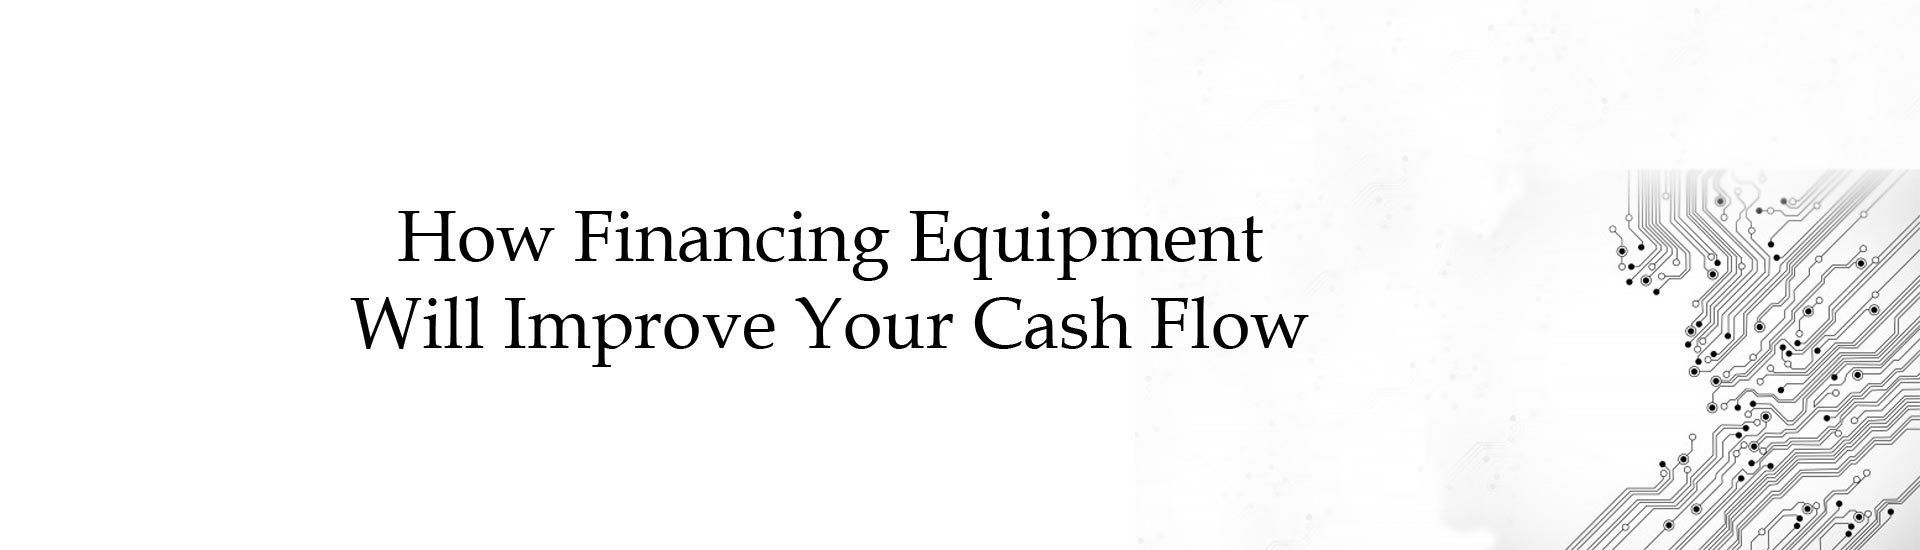 How Financing Equipment Will Improve Your Cash Flow